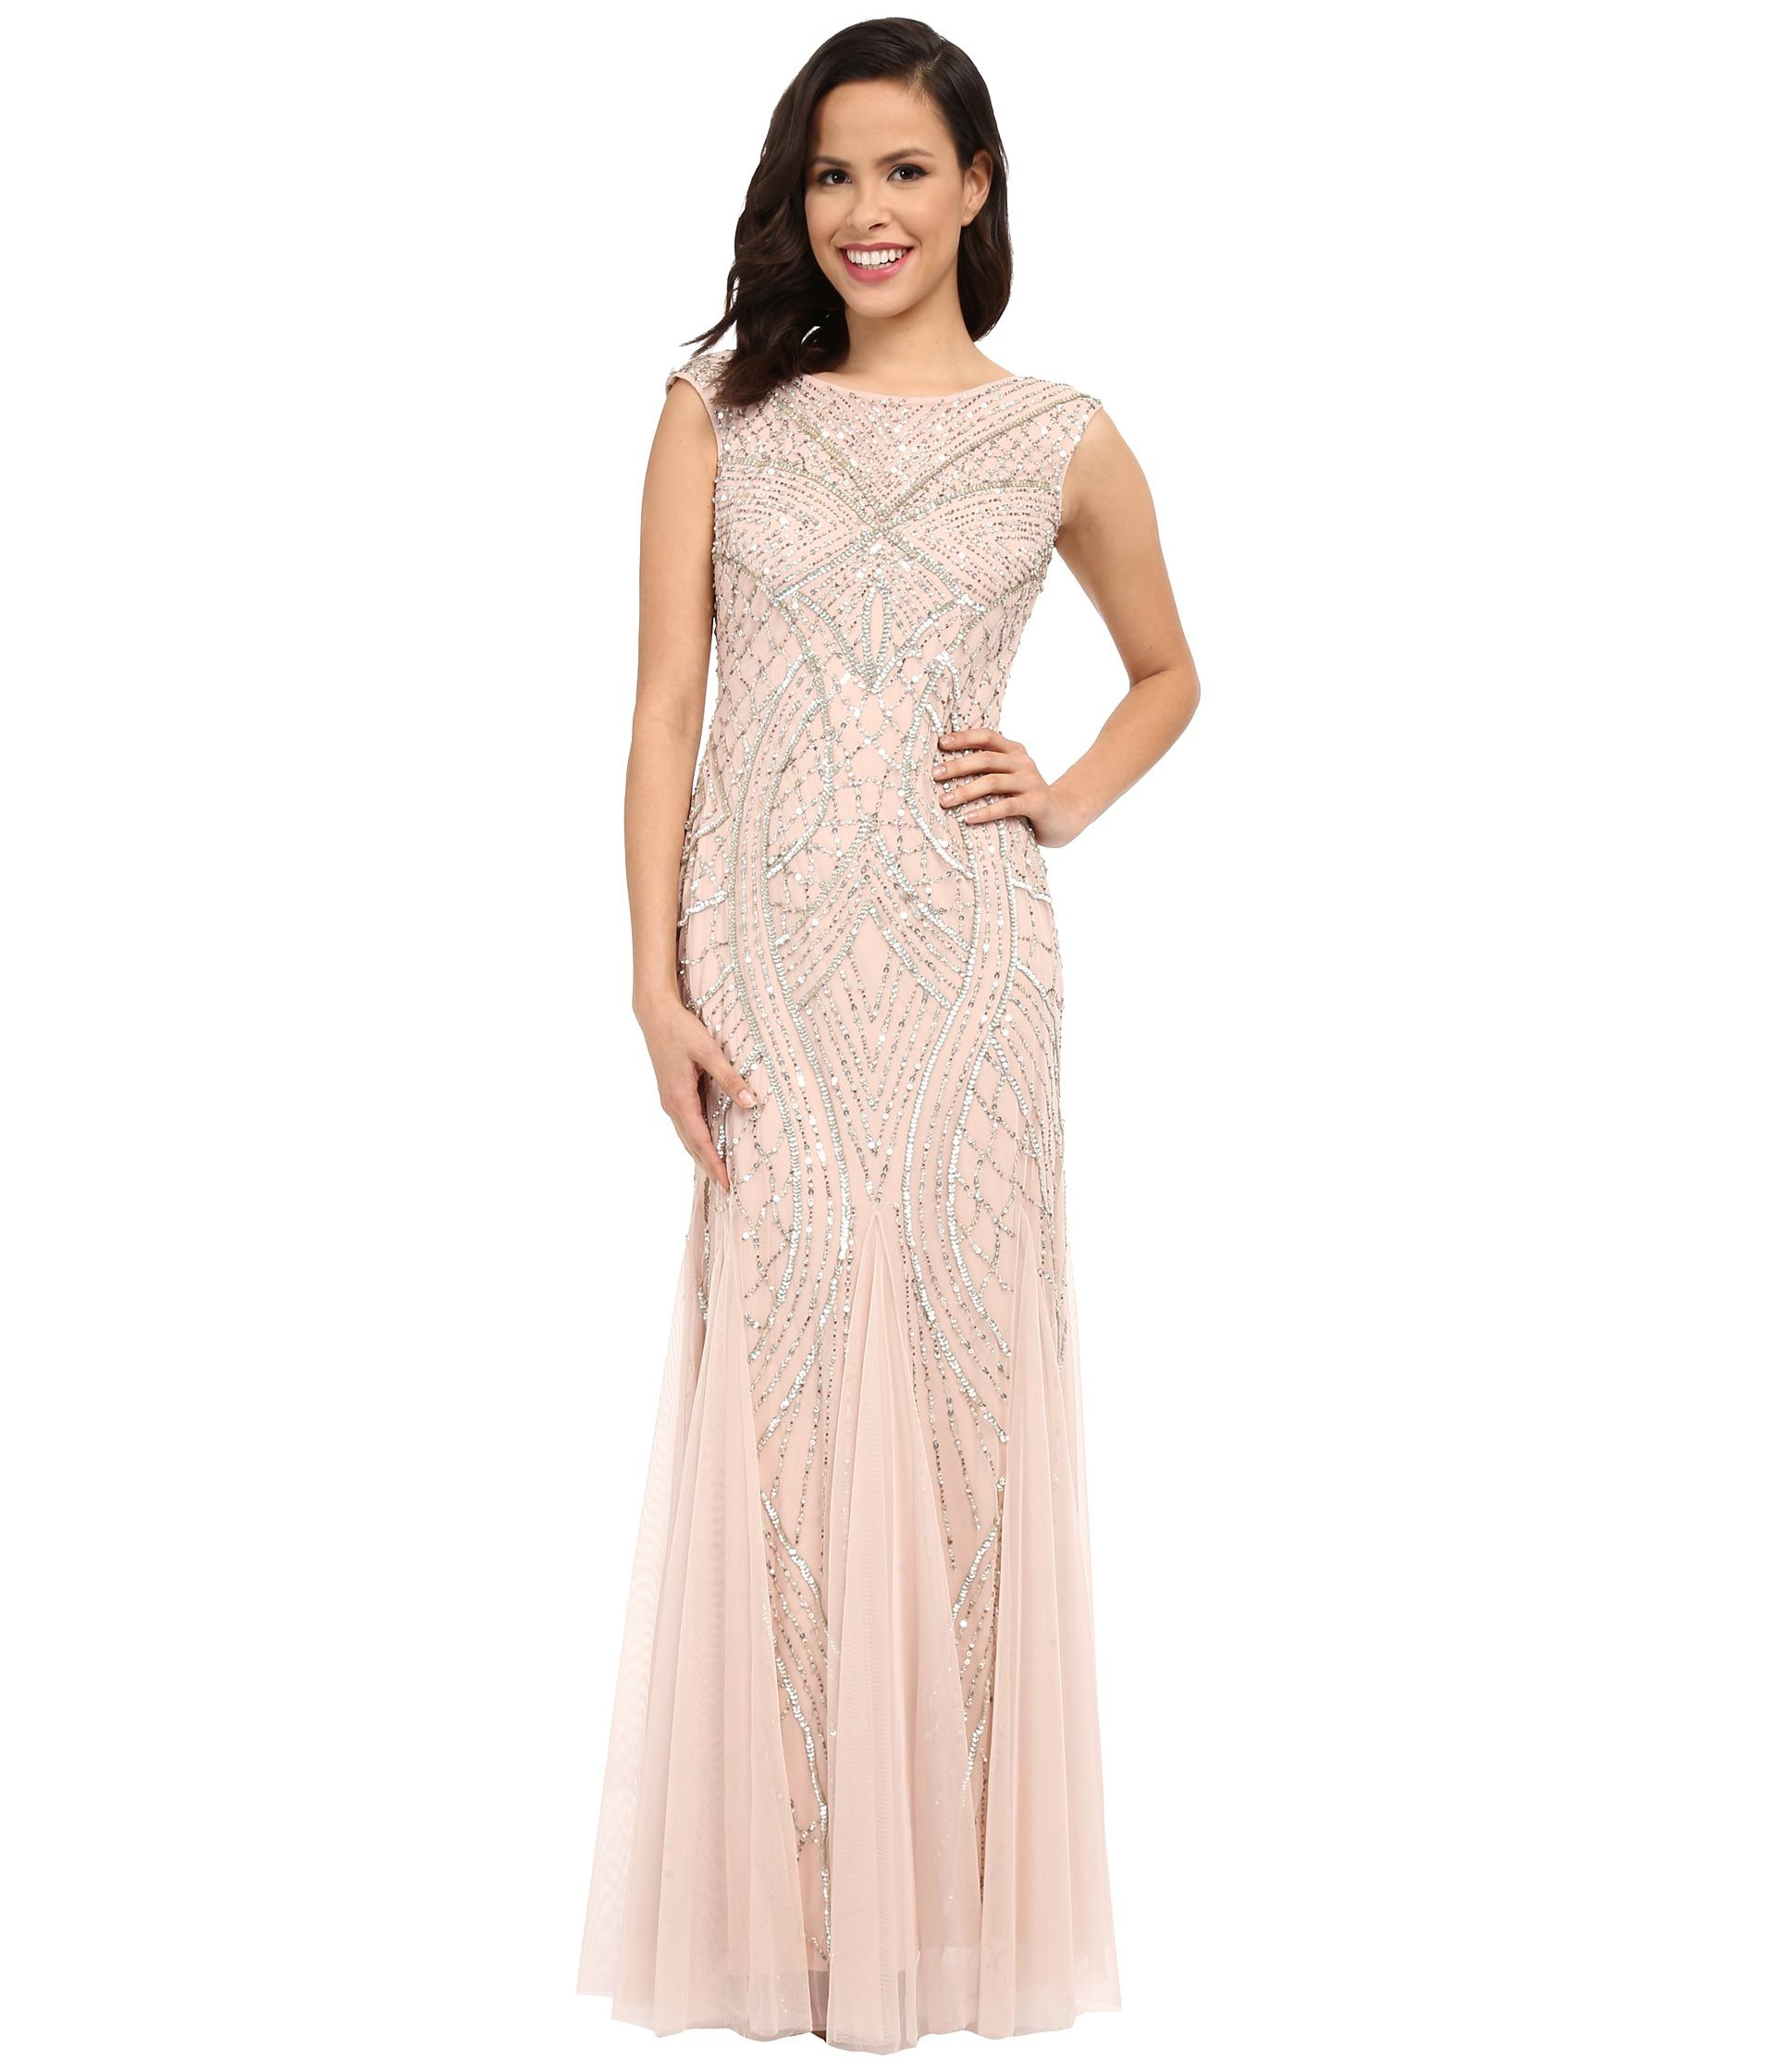 Adrianna Papell Neutral Prom Dresses – Dresses for Woman